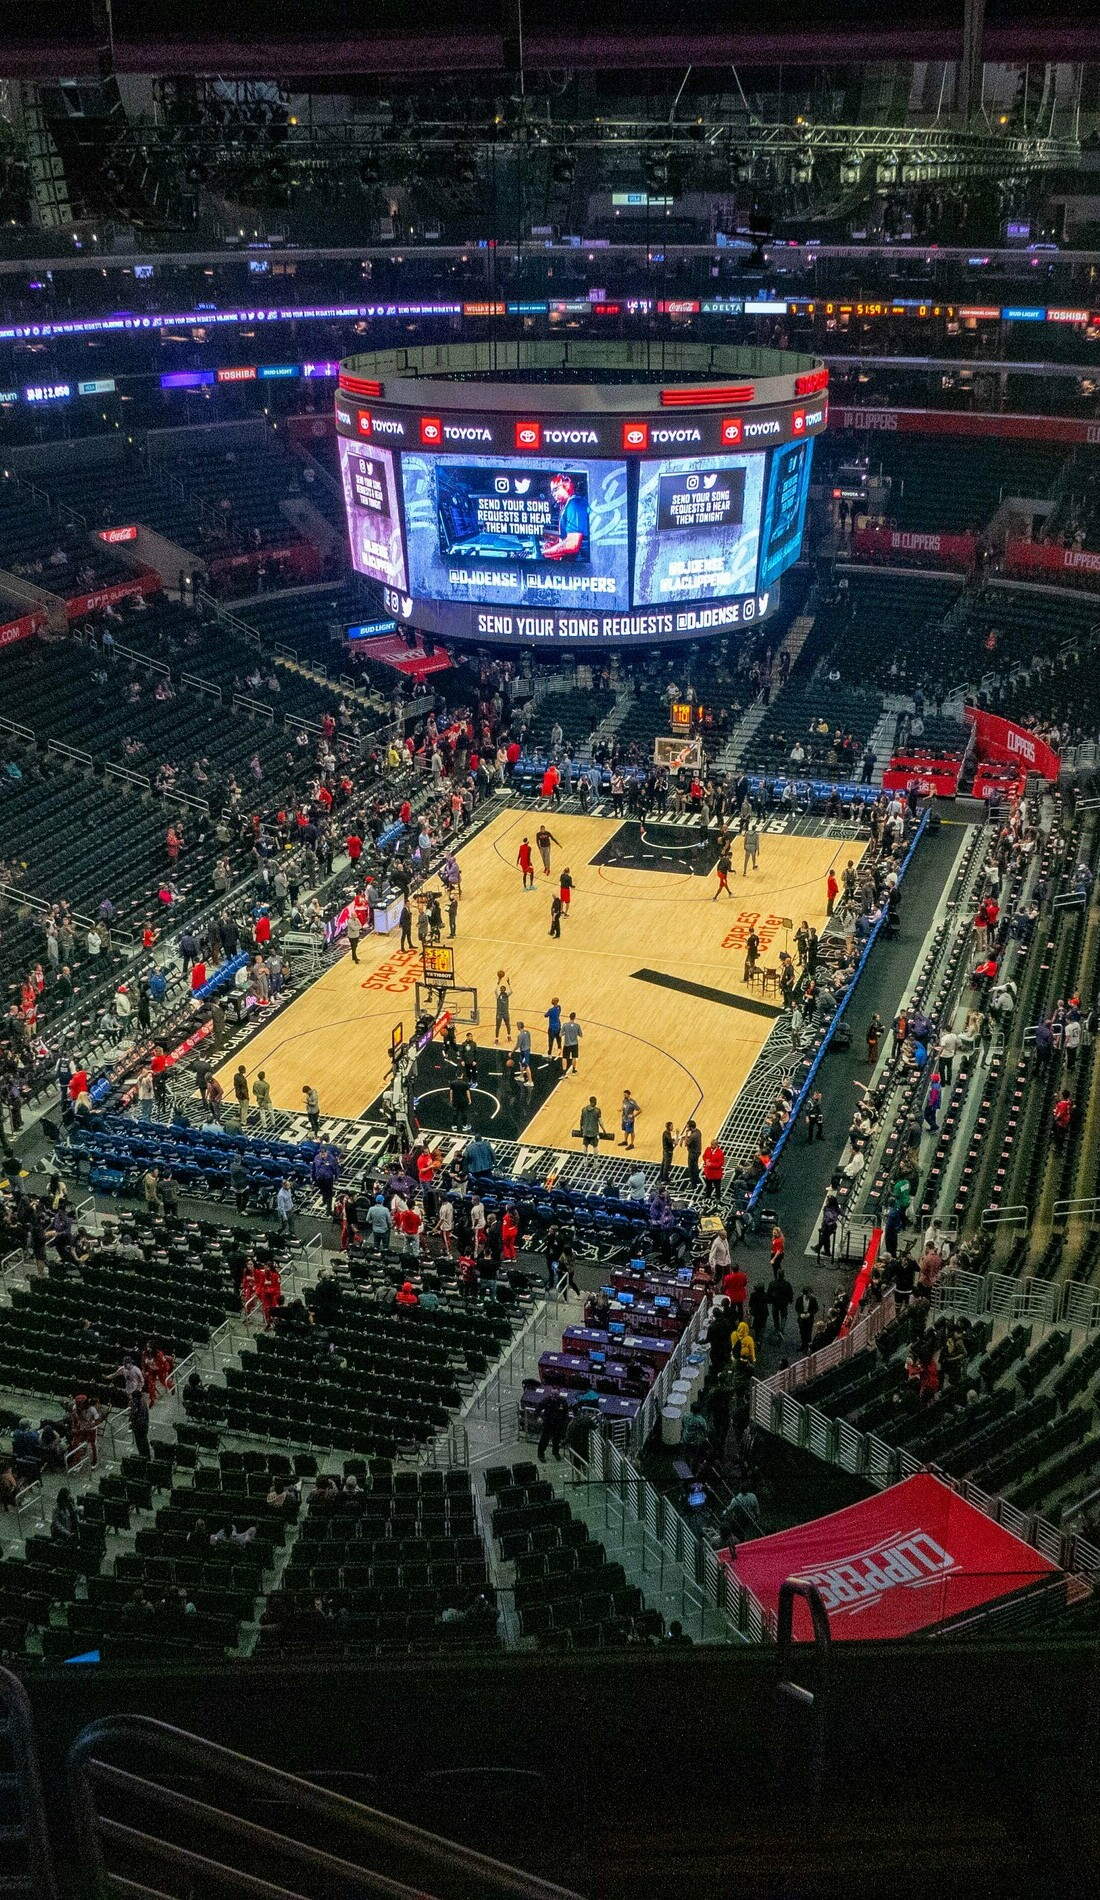 A Los Angeles Clippers live event